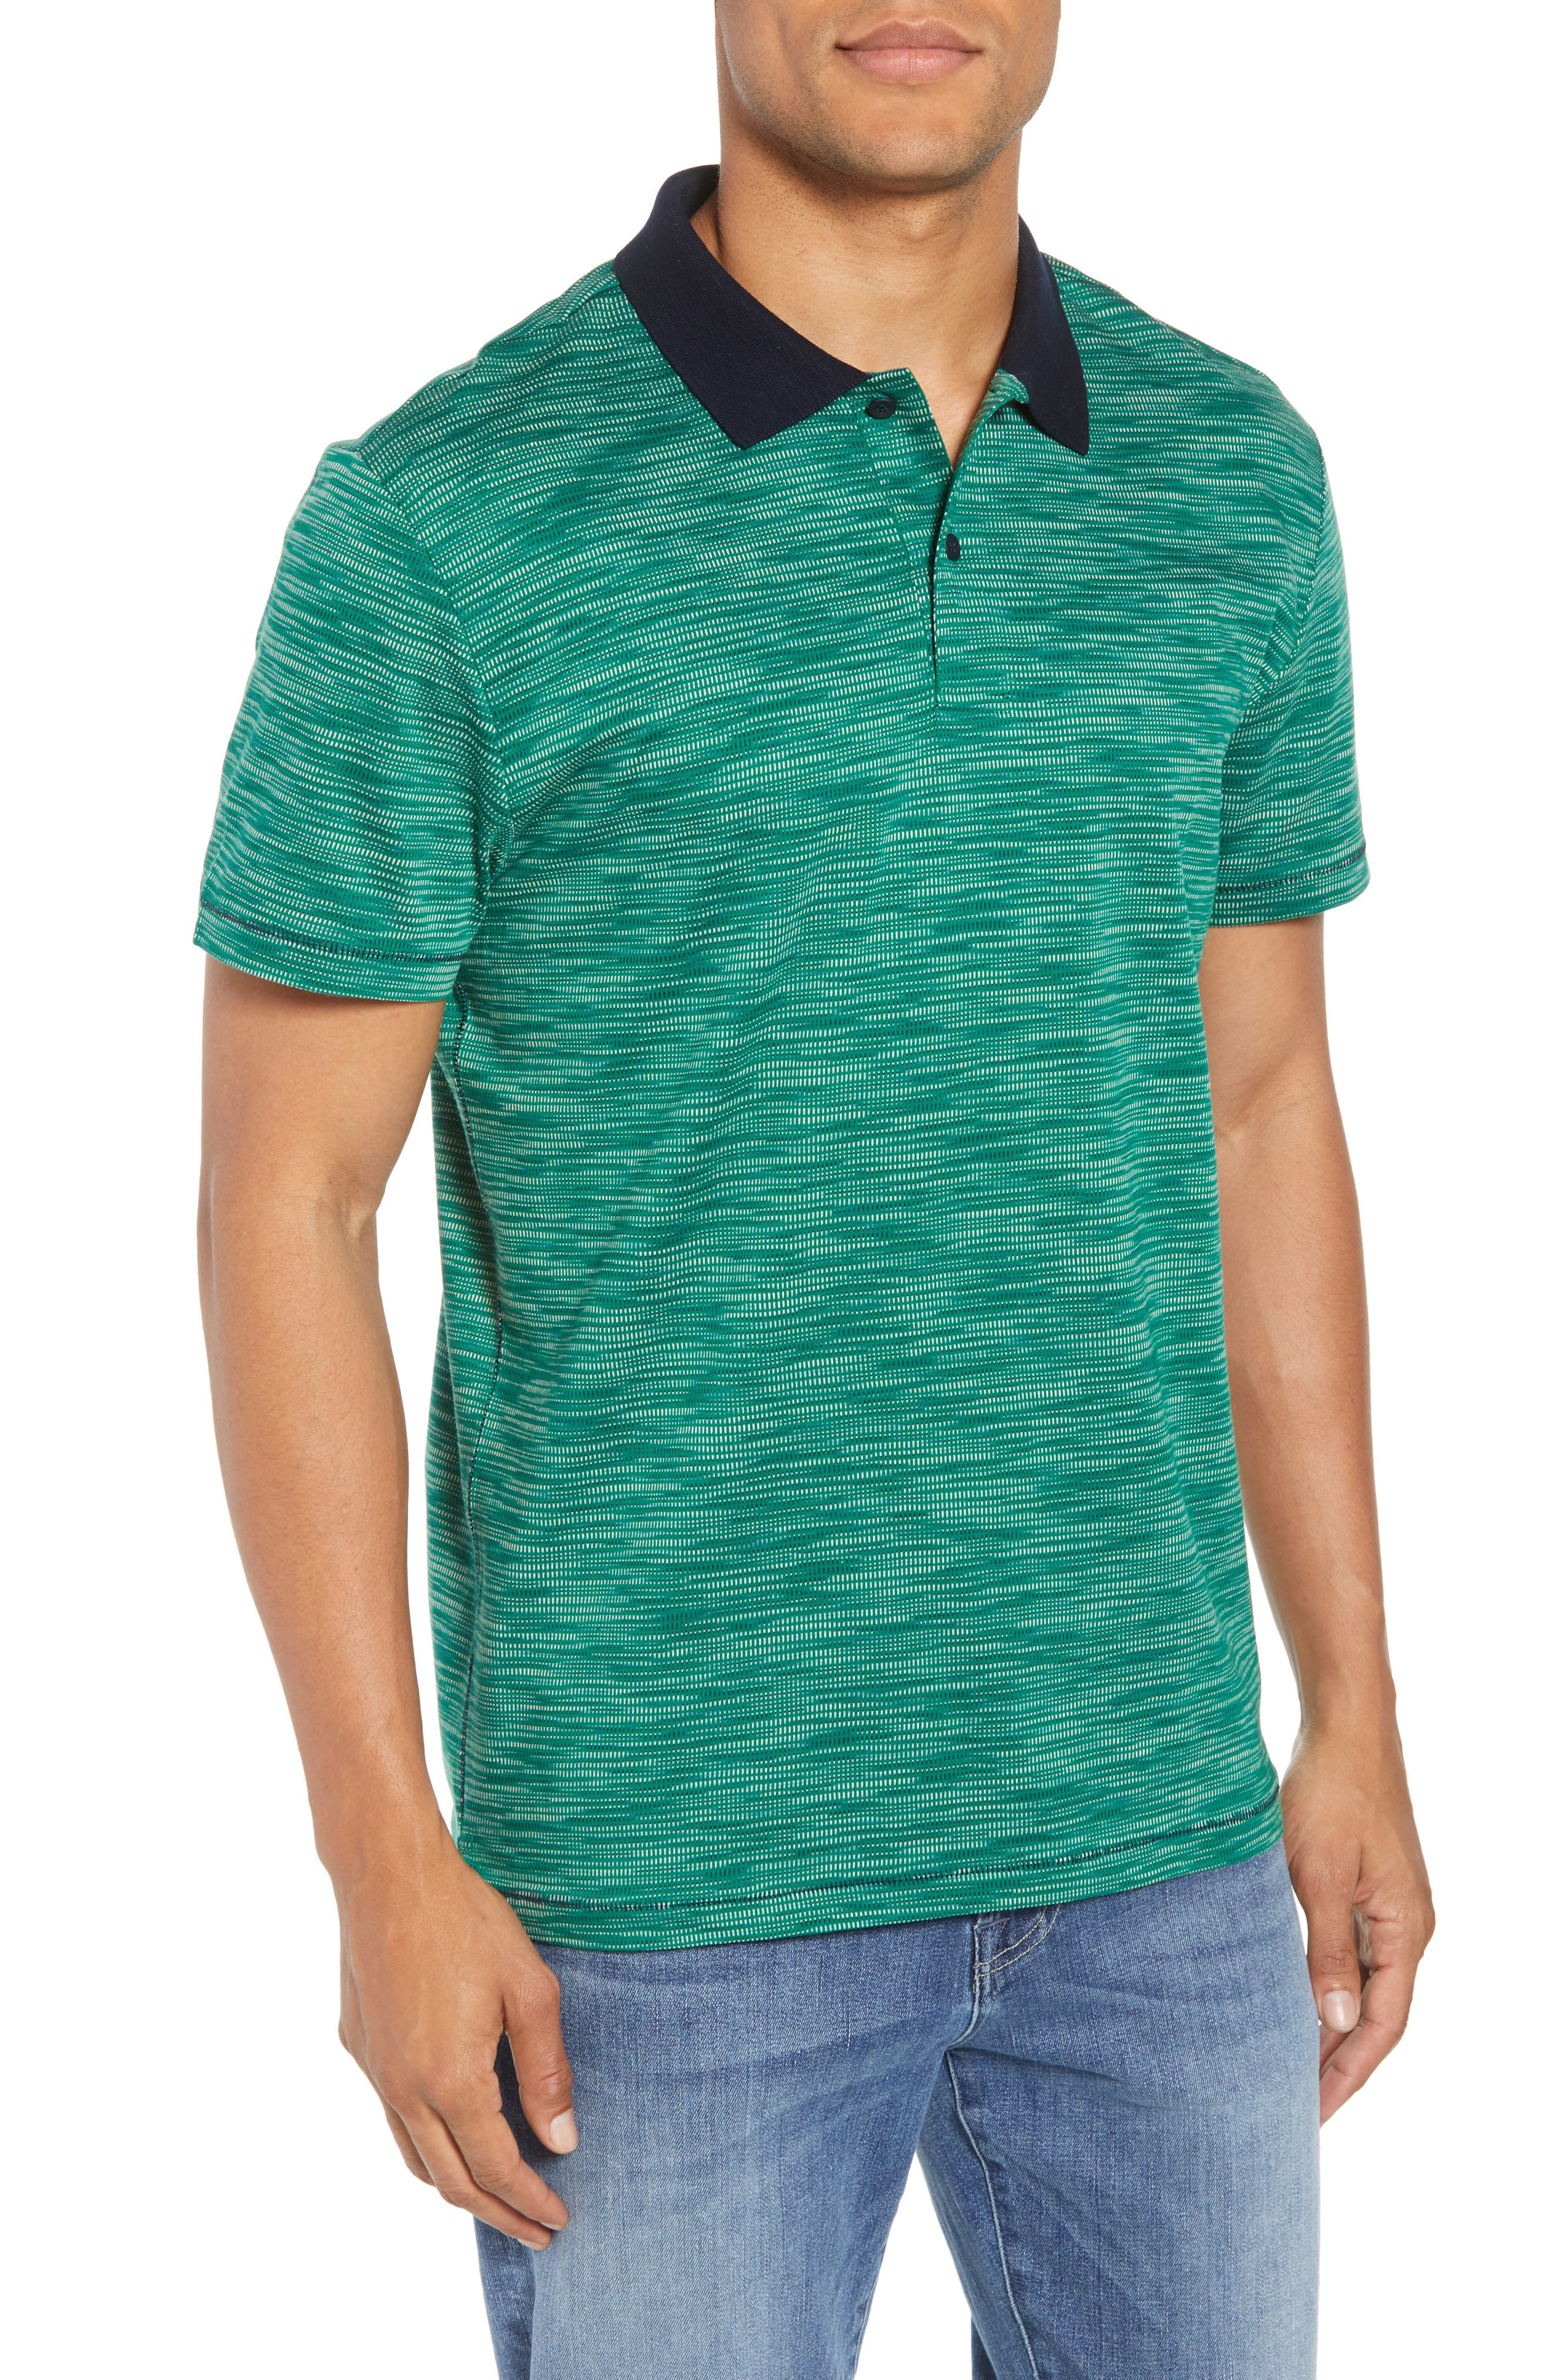 Tay Street Regular Fit Polo,                             Main thumbnail 1, color,                             Emerald